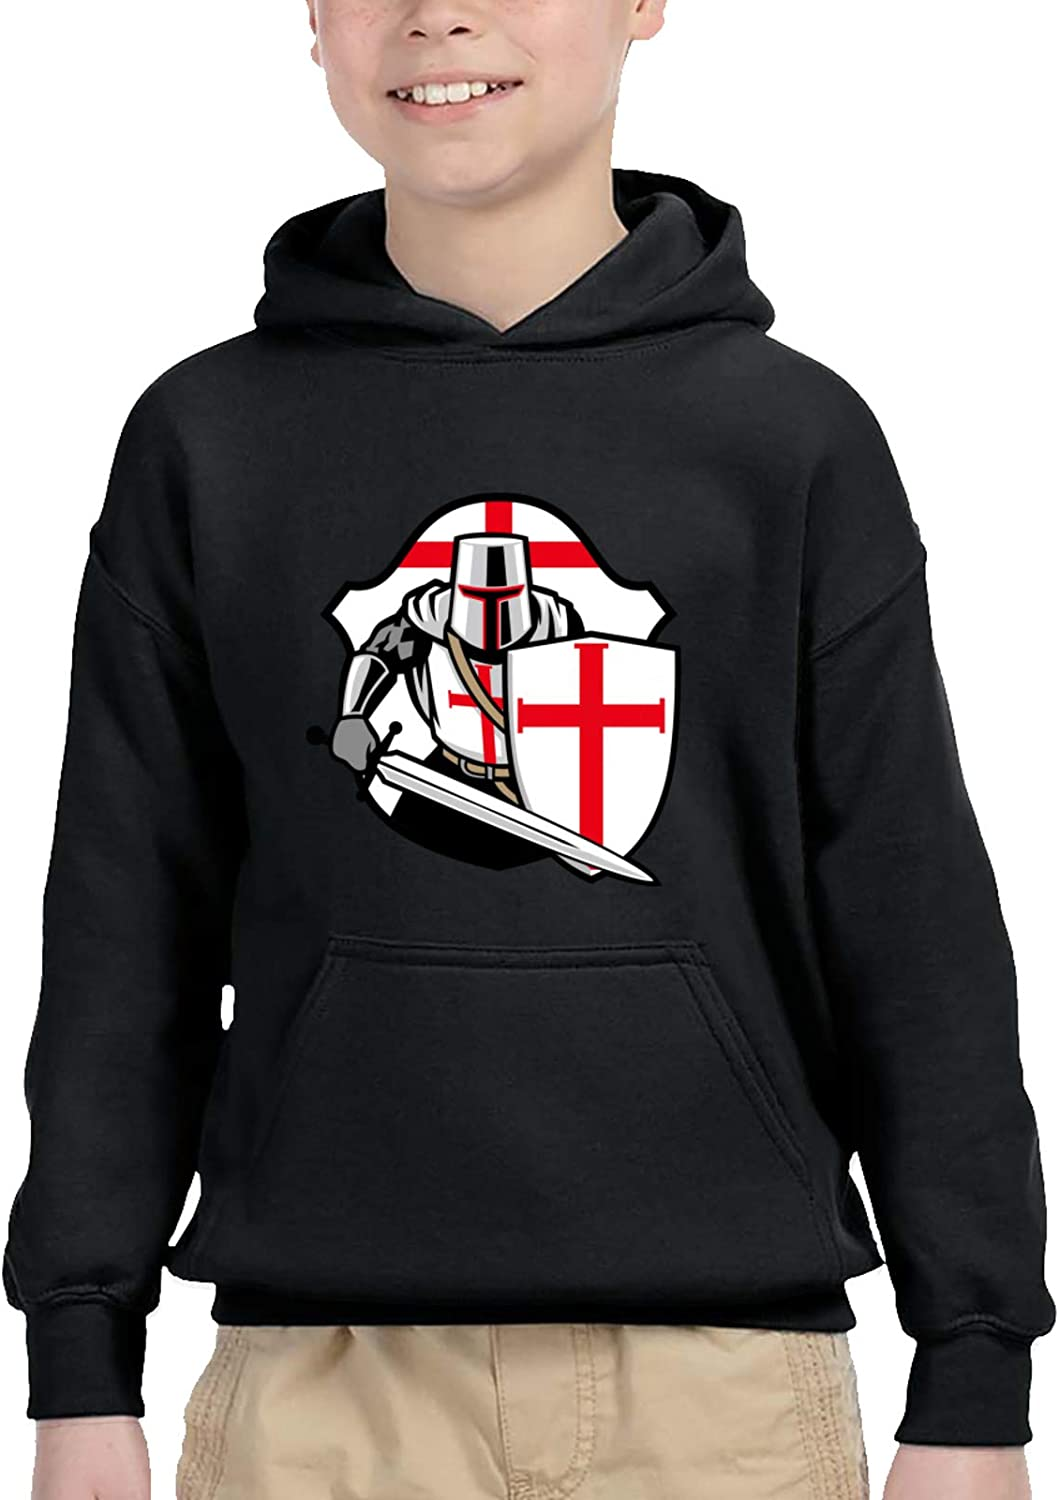 Templar Knight Symbol Children'S Hooded Sweater Casual Sweater For Baby Boys Girls